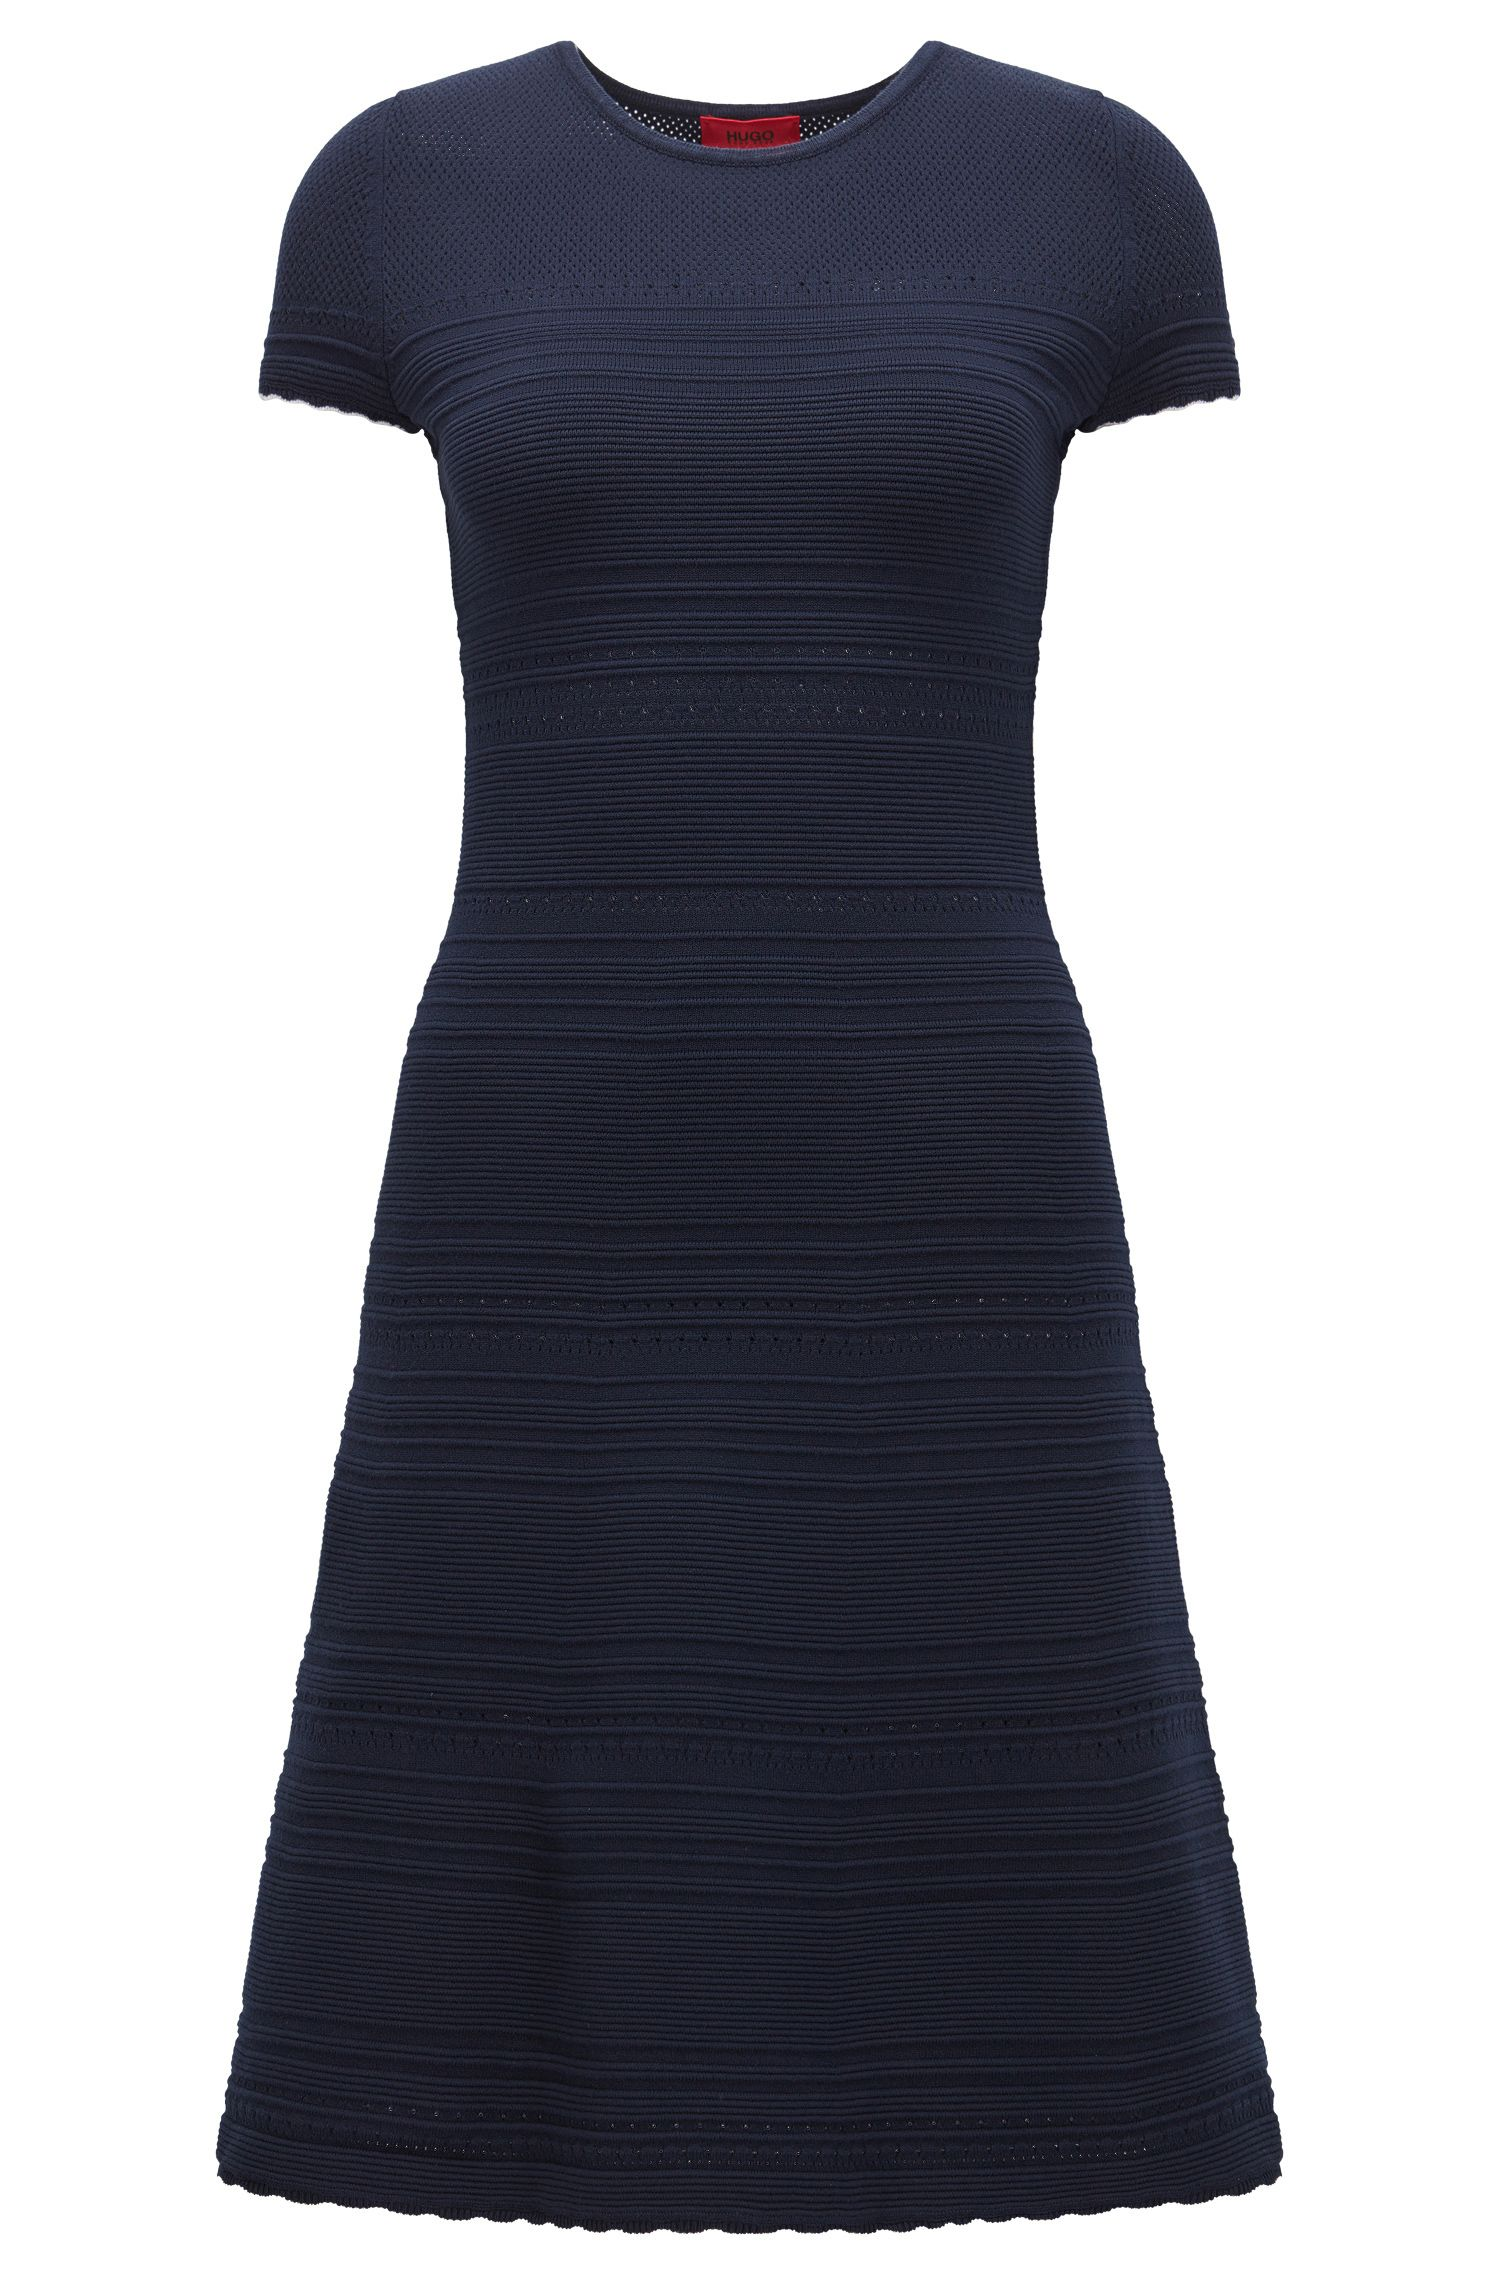 Robe en maille Slim Fit à base festonnée